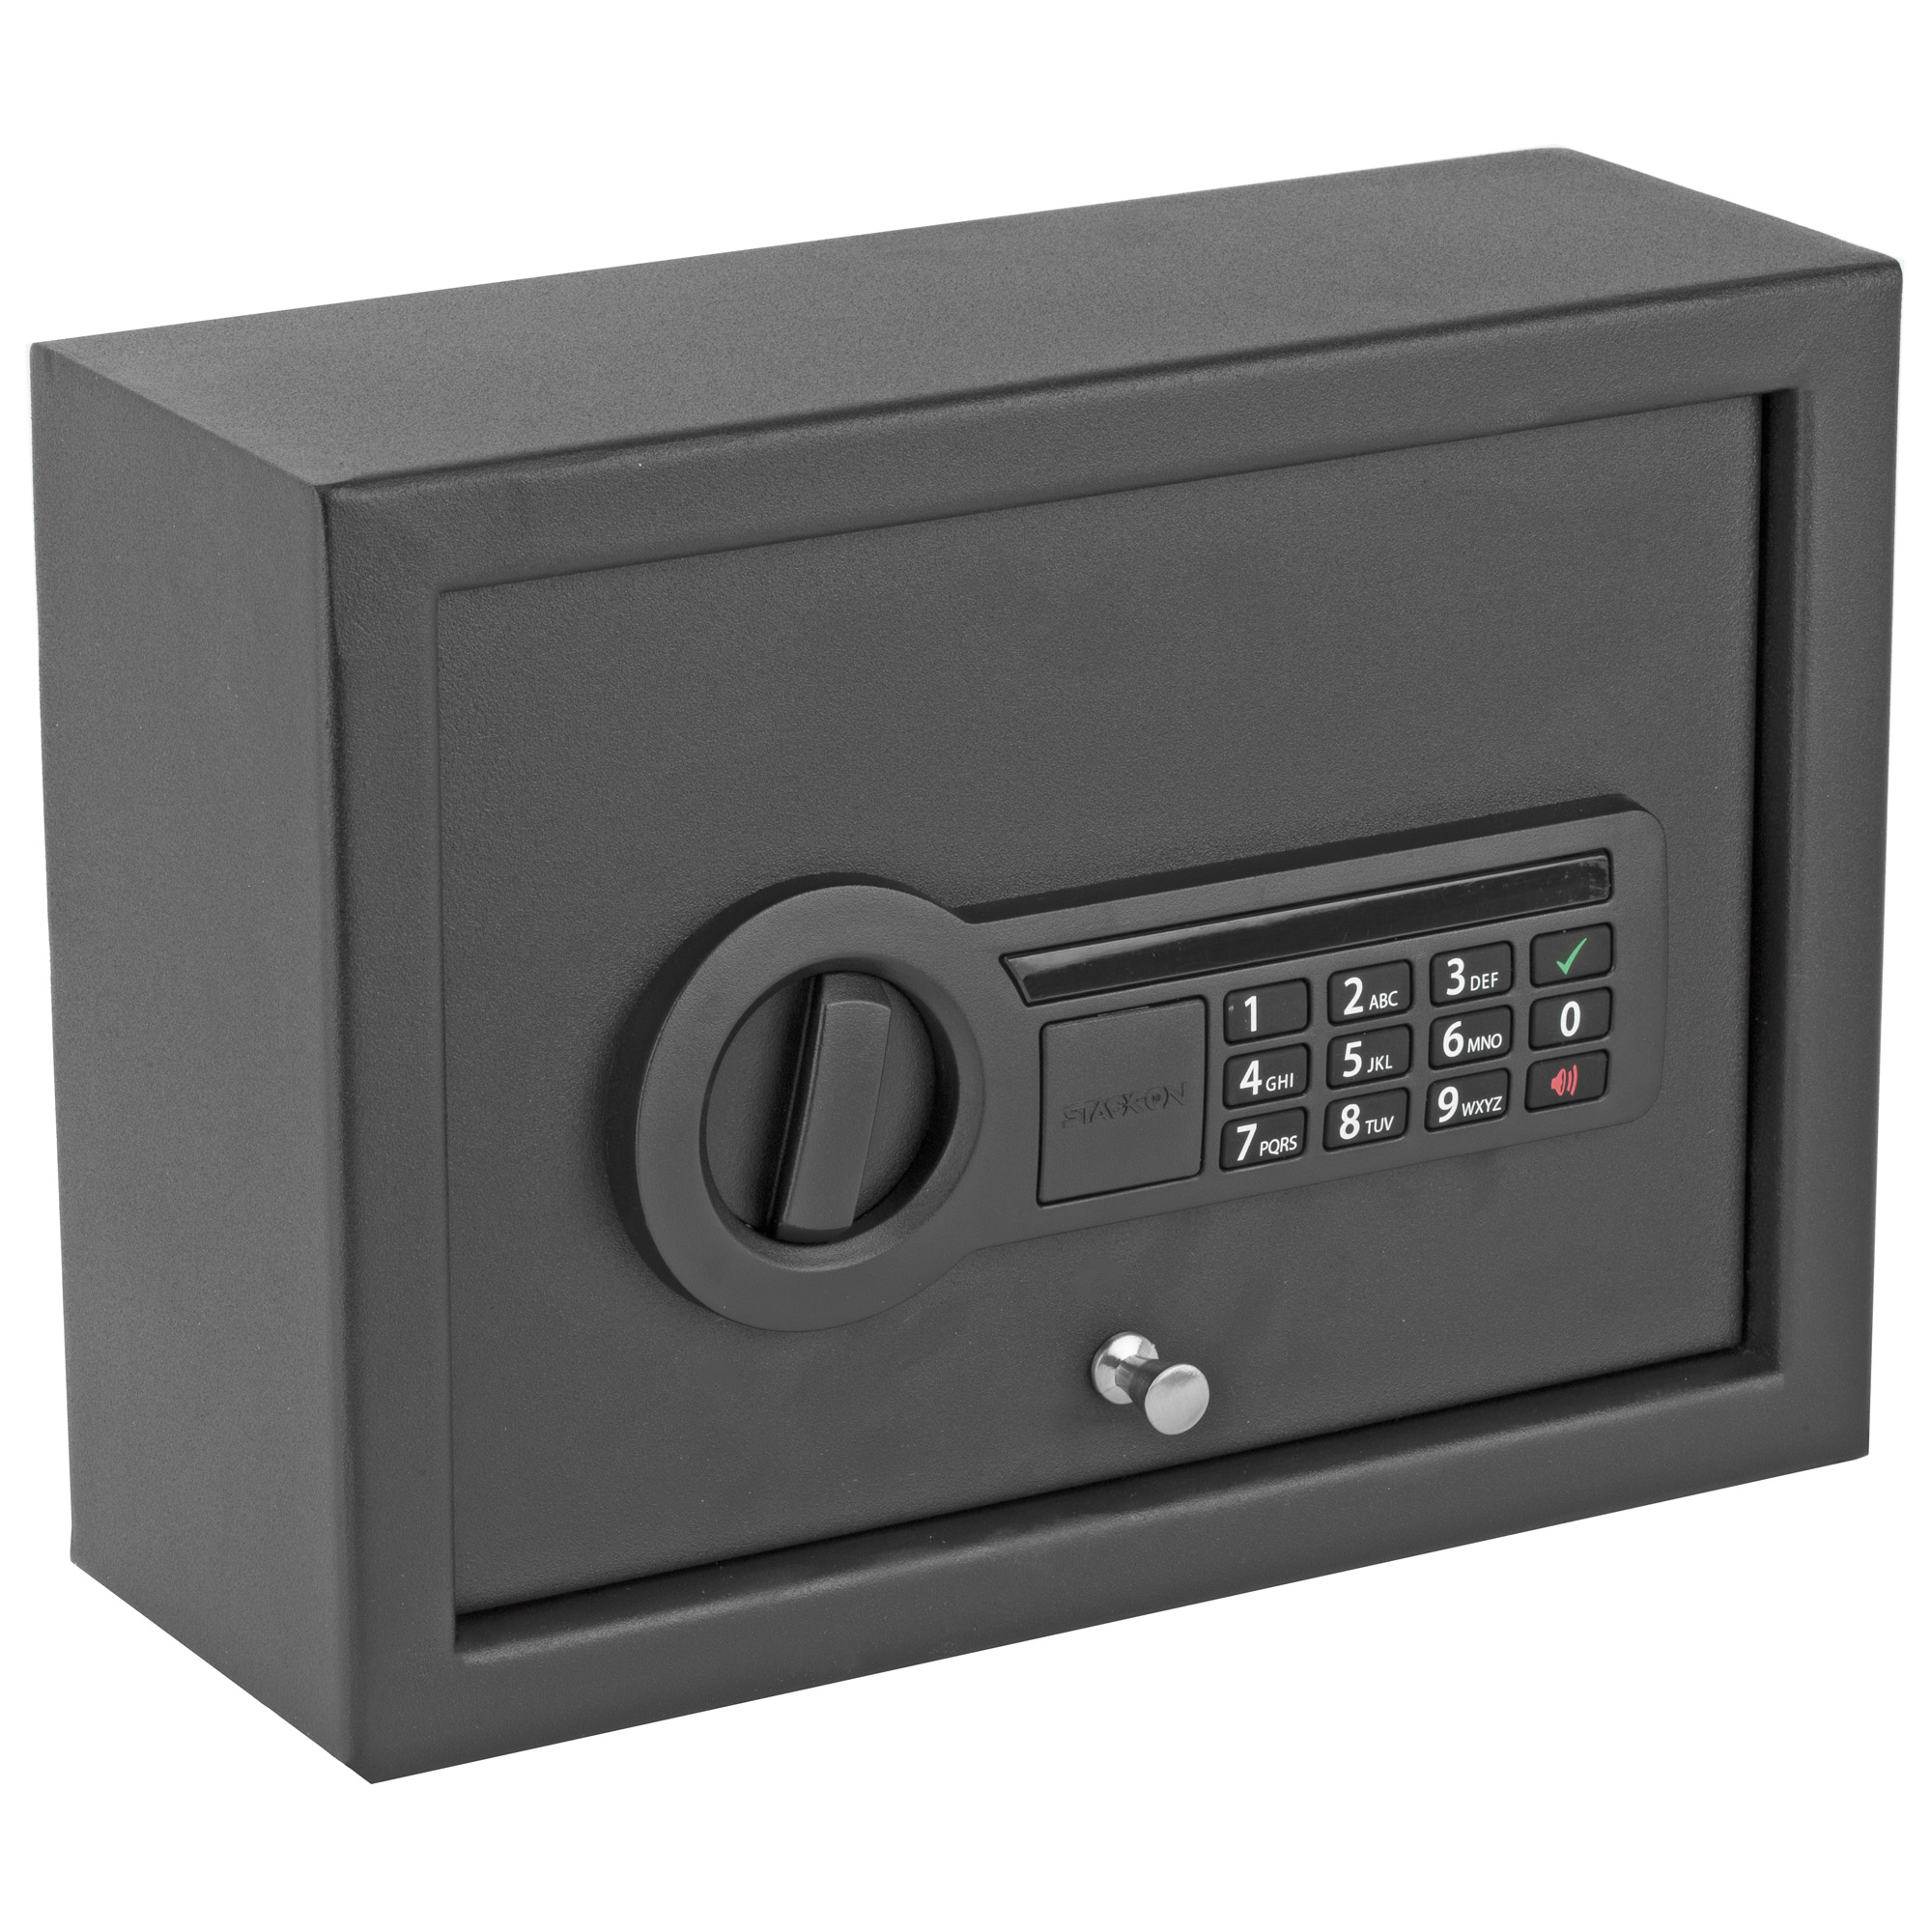 This drawer safe fits perfectly in a desk or nightstand drawer to provide security for personal documents and valuables at home or in the office.